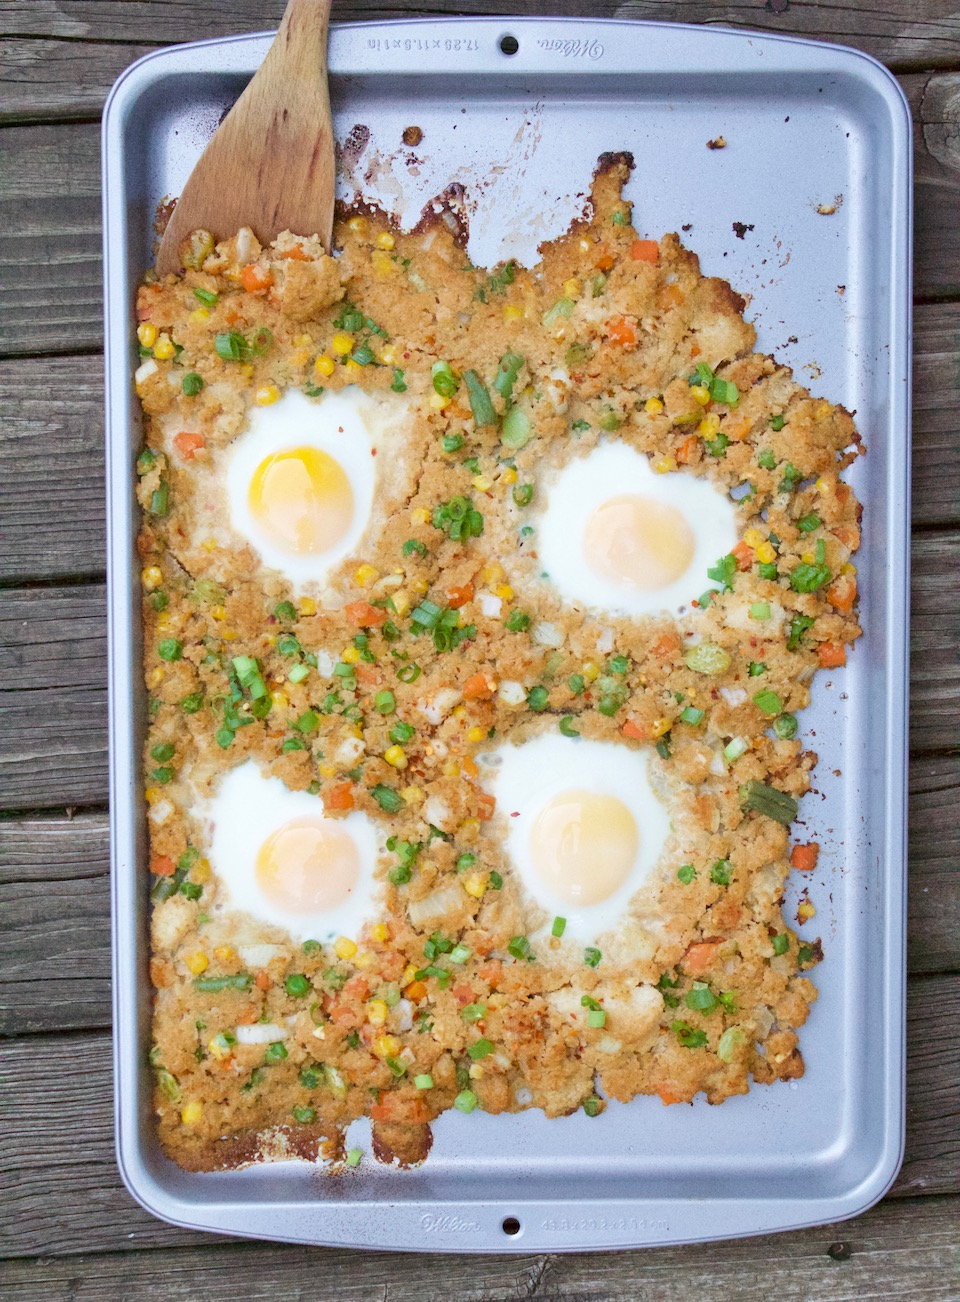 A low-carb and gluten free cauliflower fried rice recipe that's thrown on a sheet pan and baked in the oven. Only 7 ingredients, and made in under 20 minutes! | @sinfulnutrition | #thereciperedux